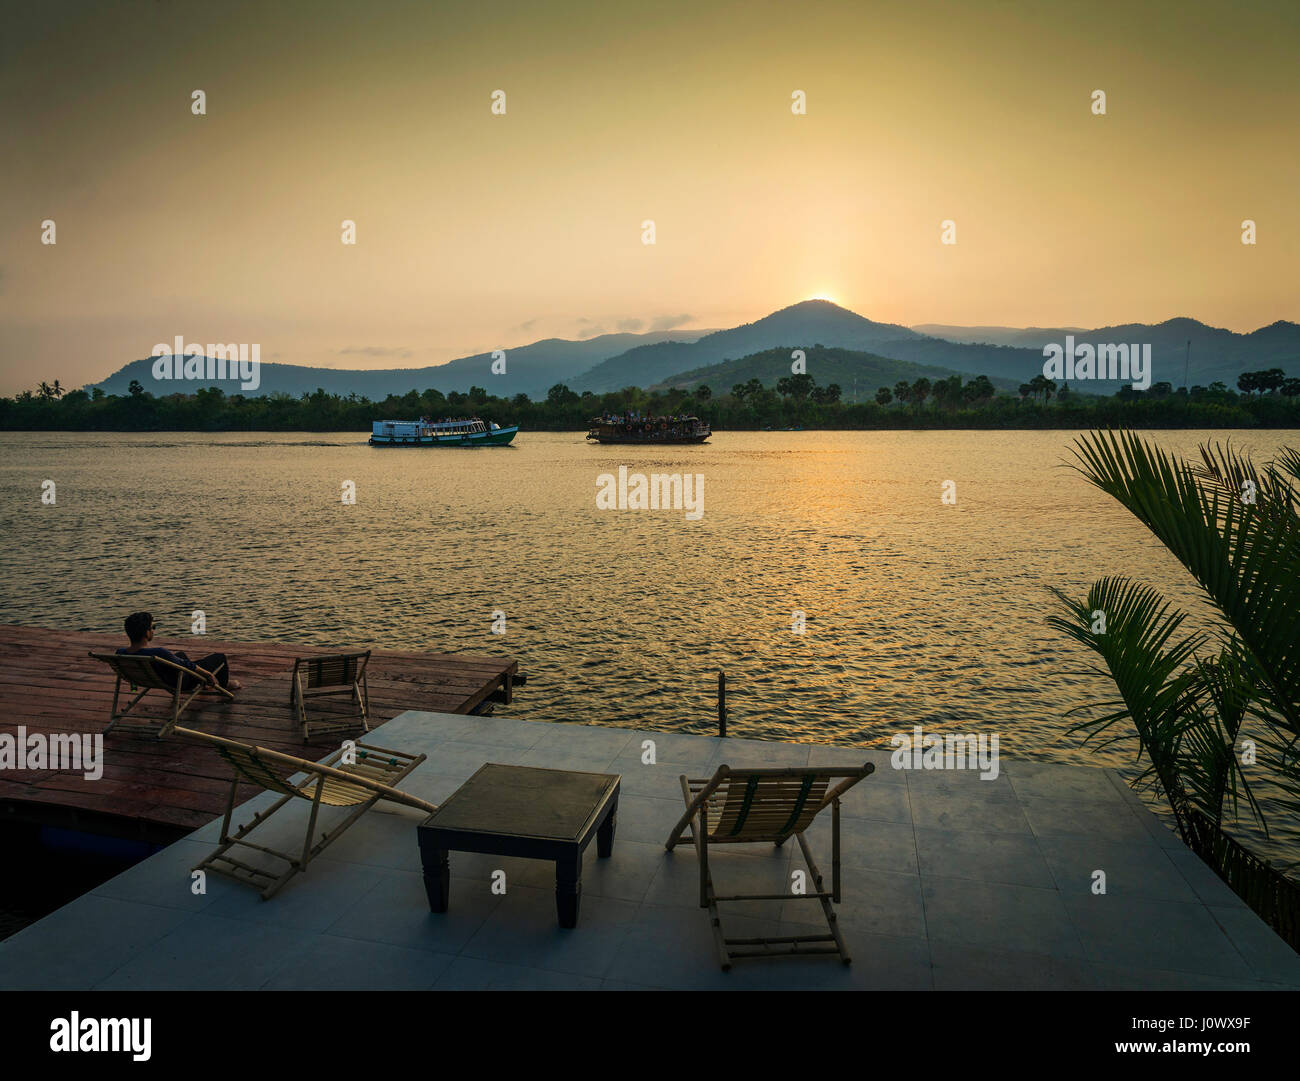 riverside sunset view in kampot cambodia asia with relaxing deck chairs and ferry boats - Stock Image